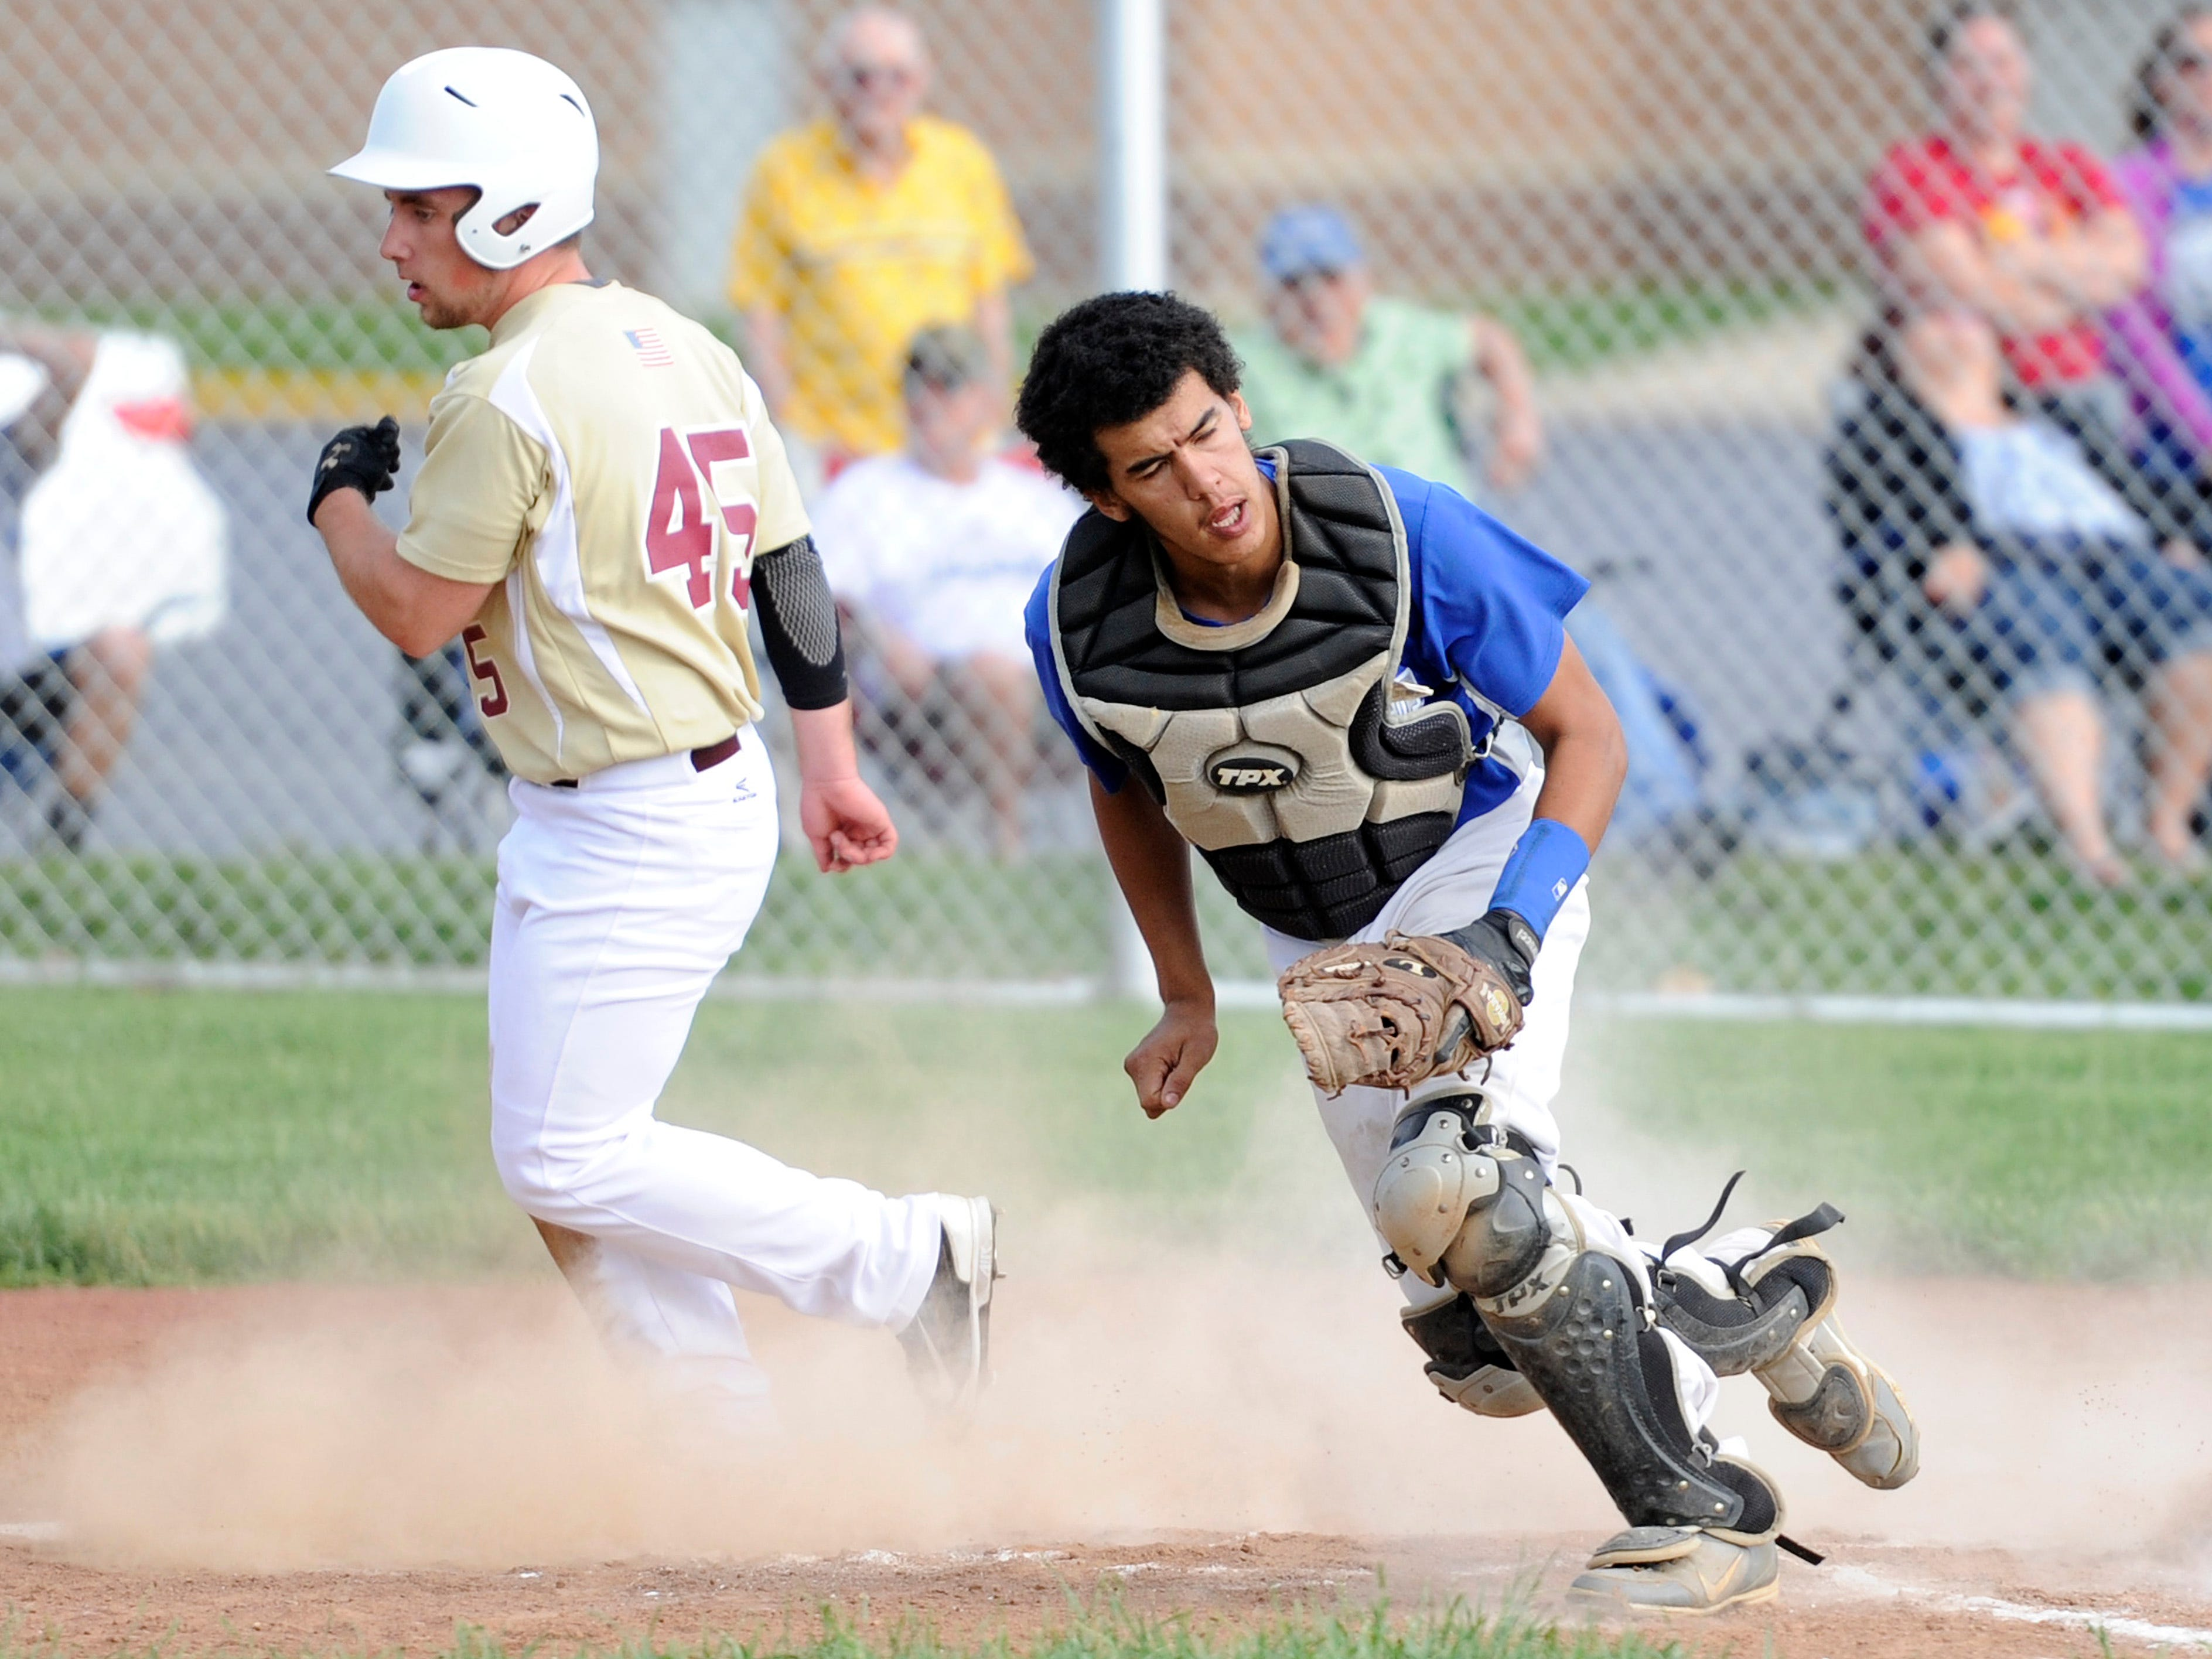 Chillicothe's catcher Noah Jackson reacts to missing the ball thrown to him at home plate allowing Licking Heights to score a run during the Division I Sectional Semi-Final at Chillicothe on Tuesday. The final score was Chillicothe 0, Licking Heights 5.